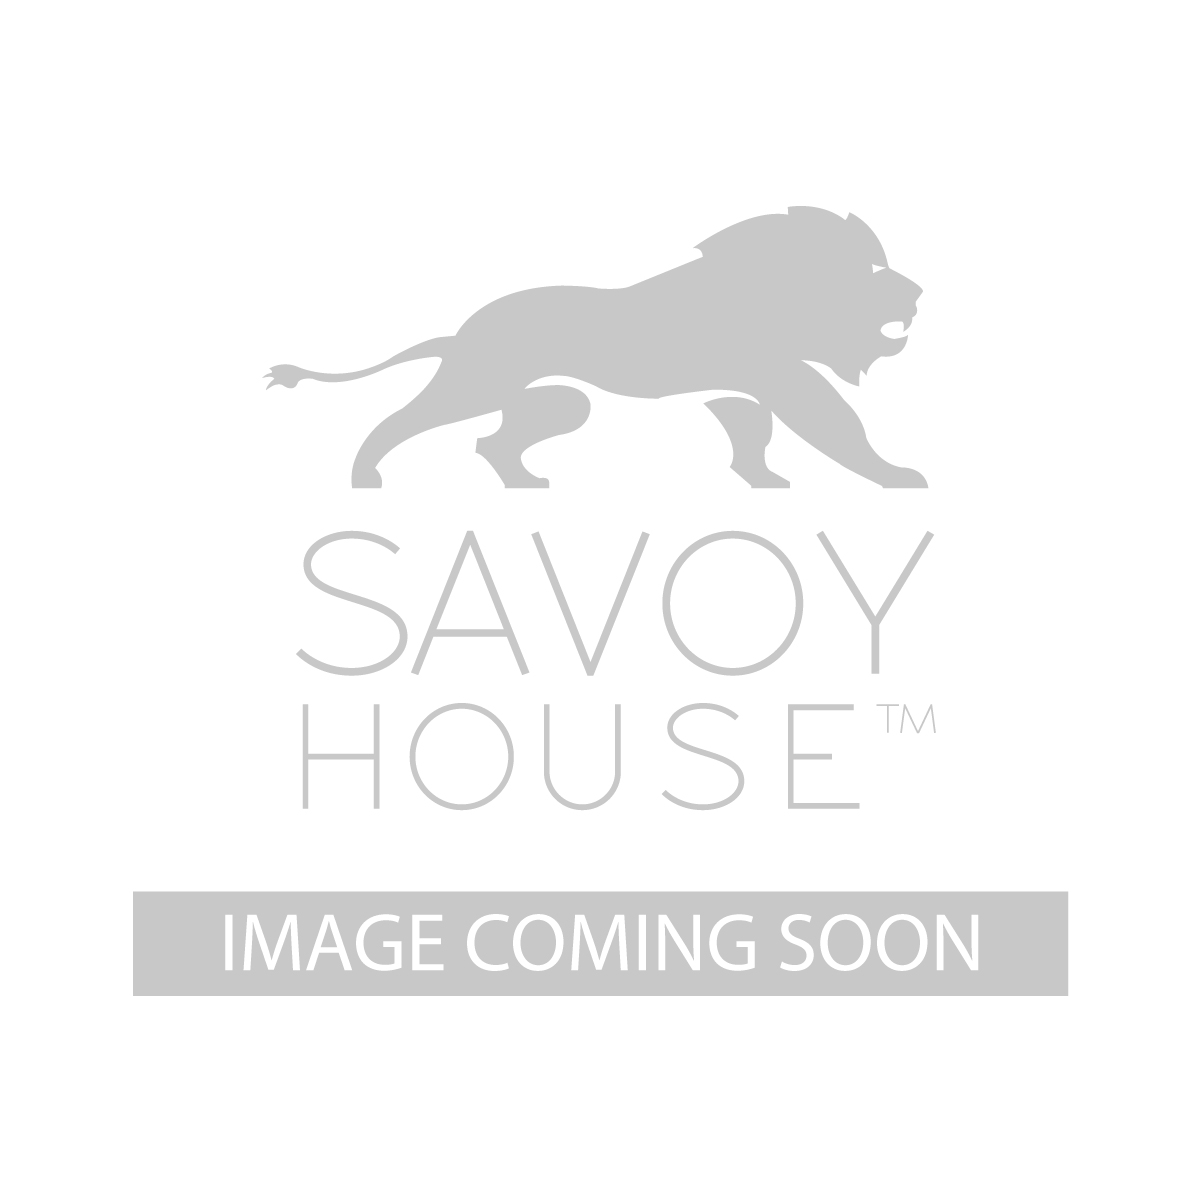 6 574 3 13 connell 3 light semi flush by savoy house for Www savoyhouse com